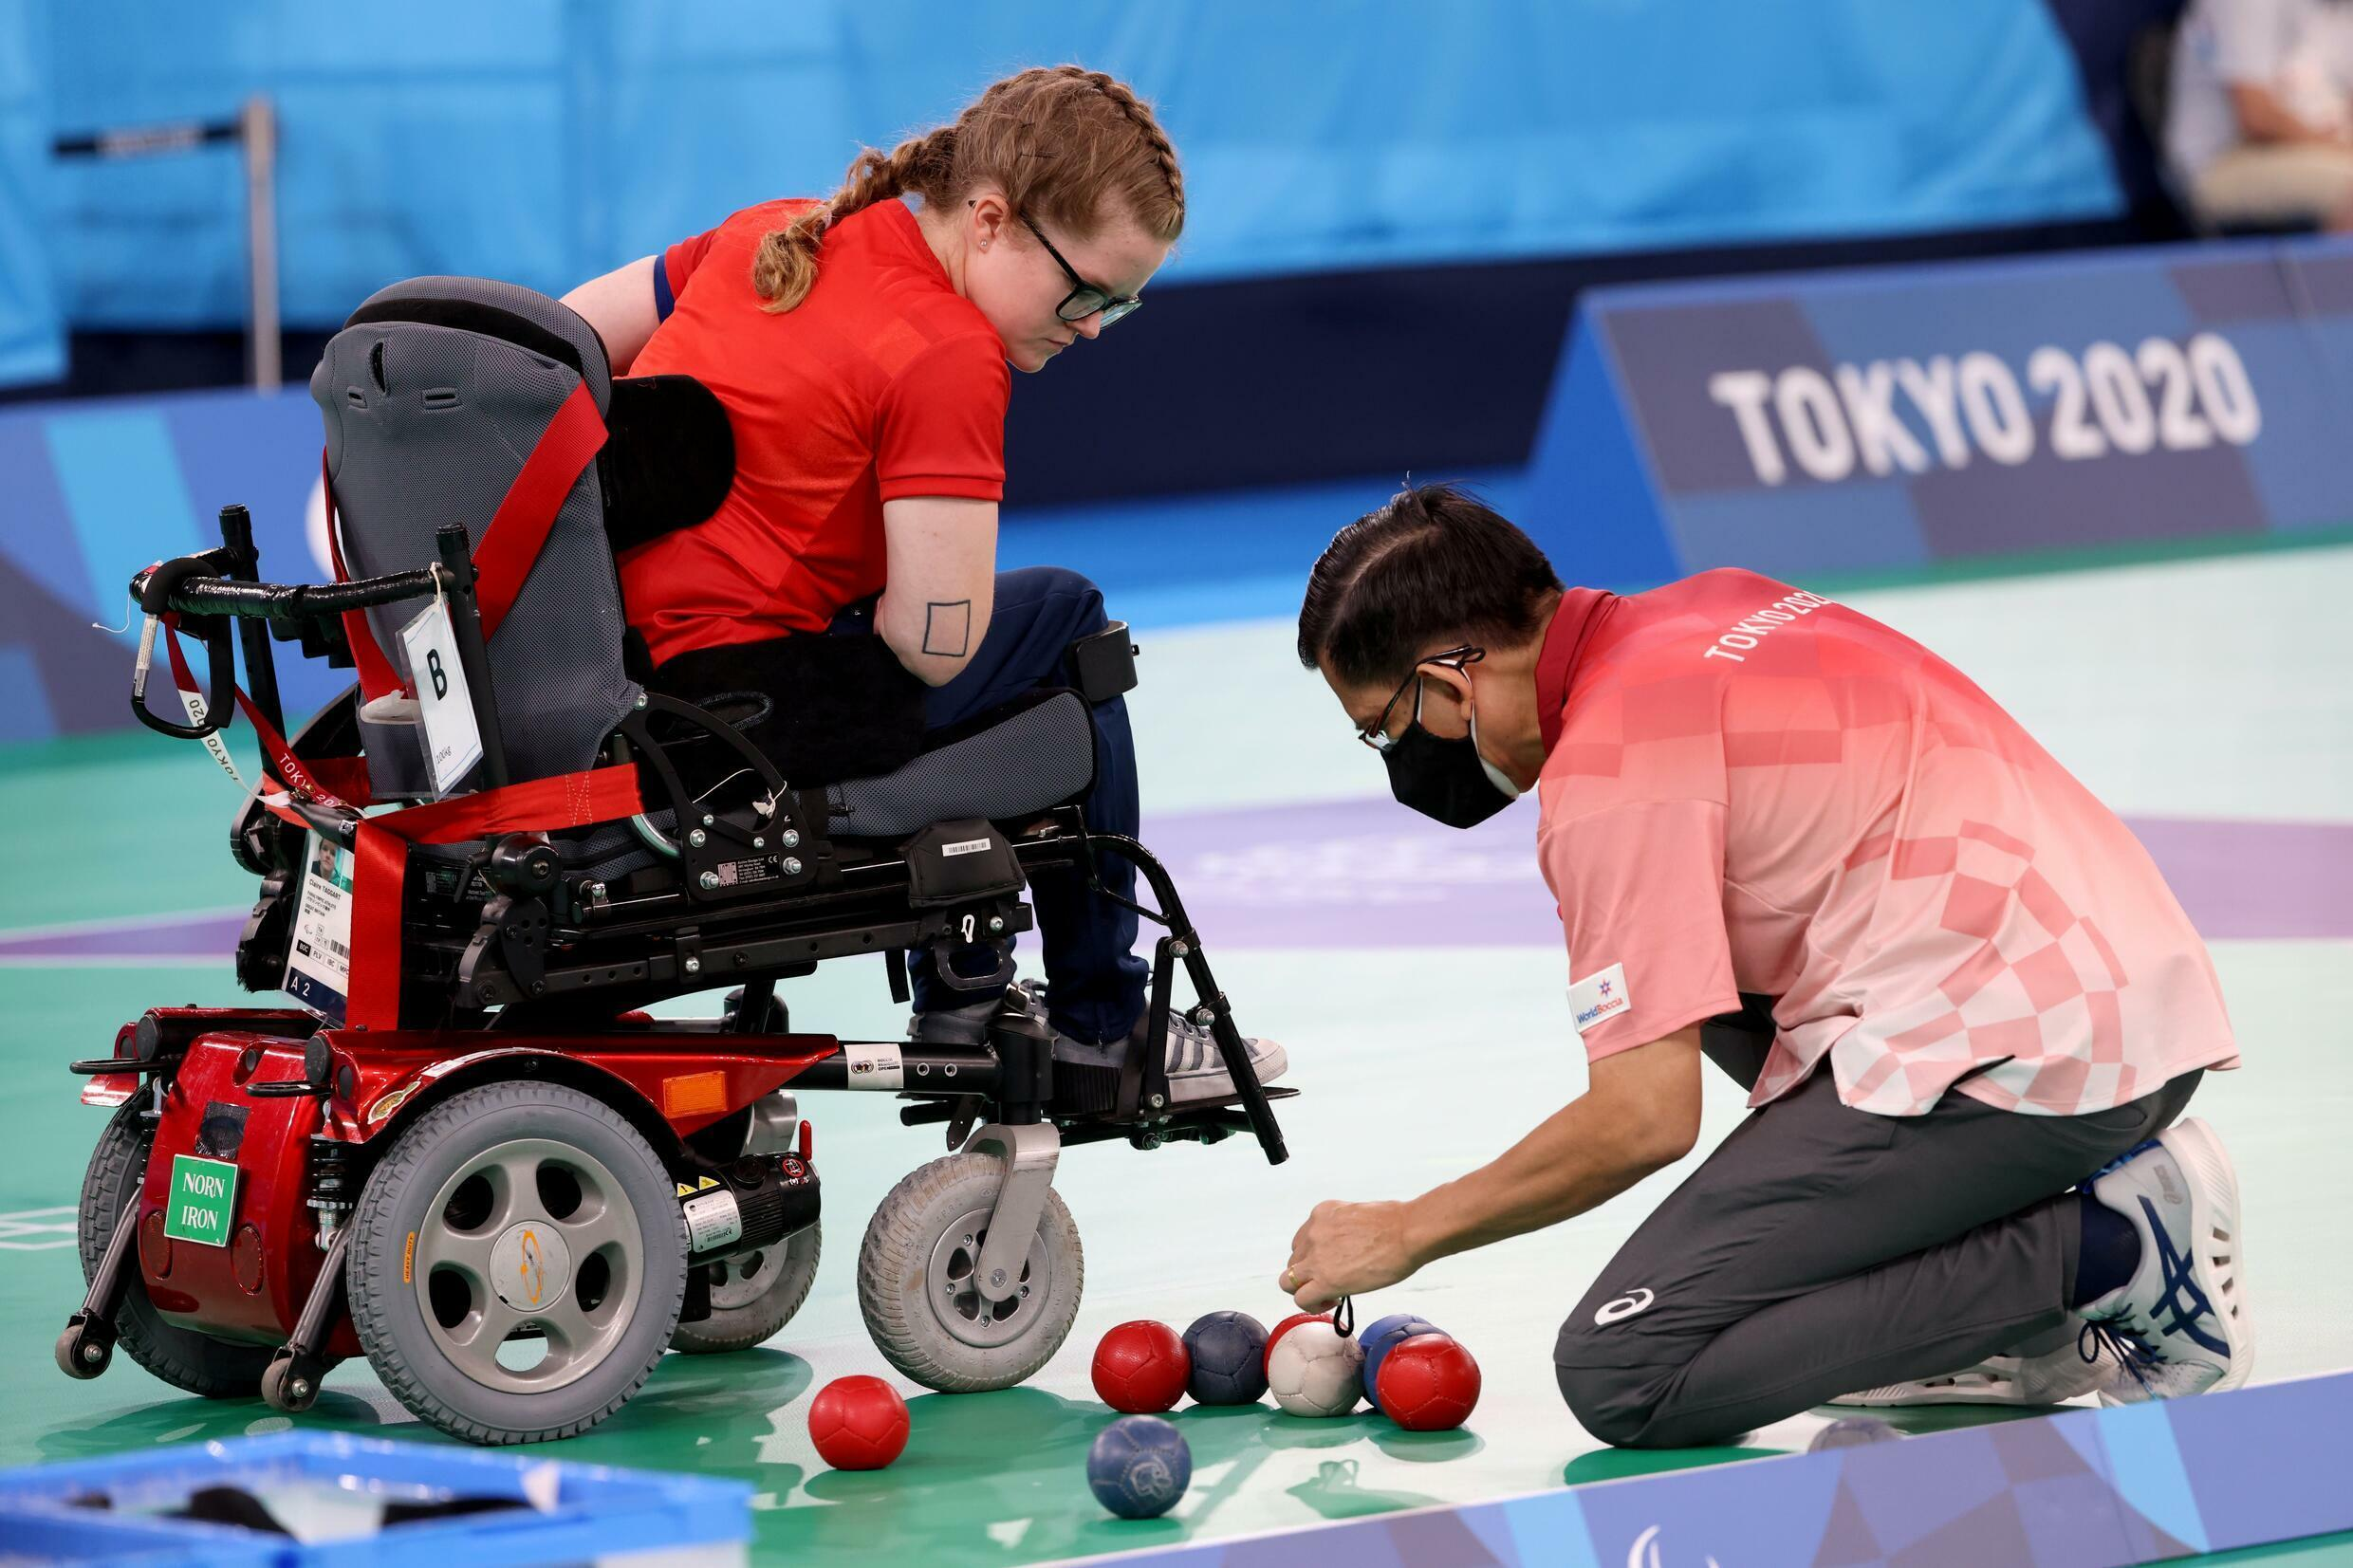 Briton Claire Taggart checks as the referee measures the distance between balls during her match against Argentinian Luis Cristaldo in the individual class BC2 of boccia